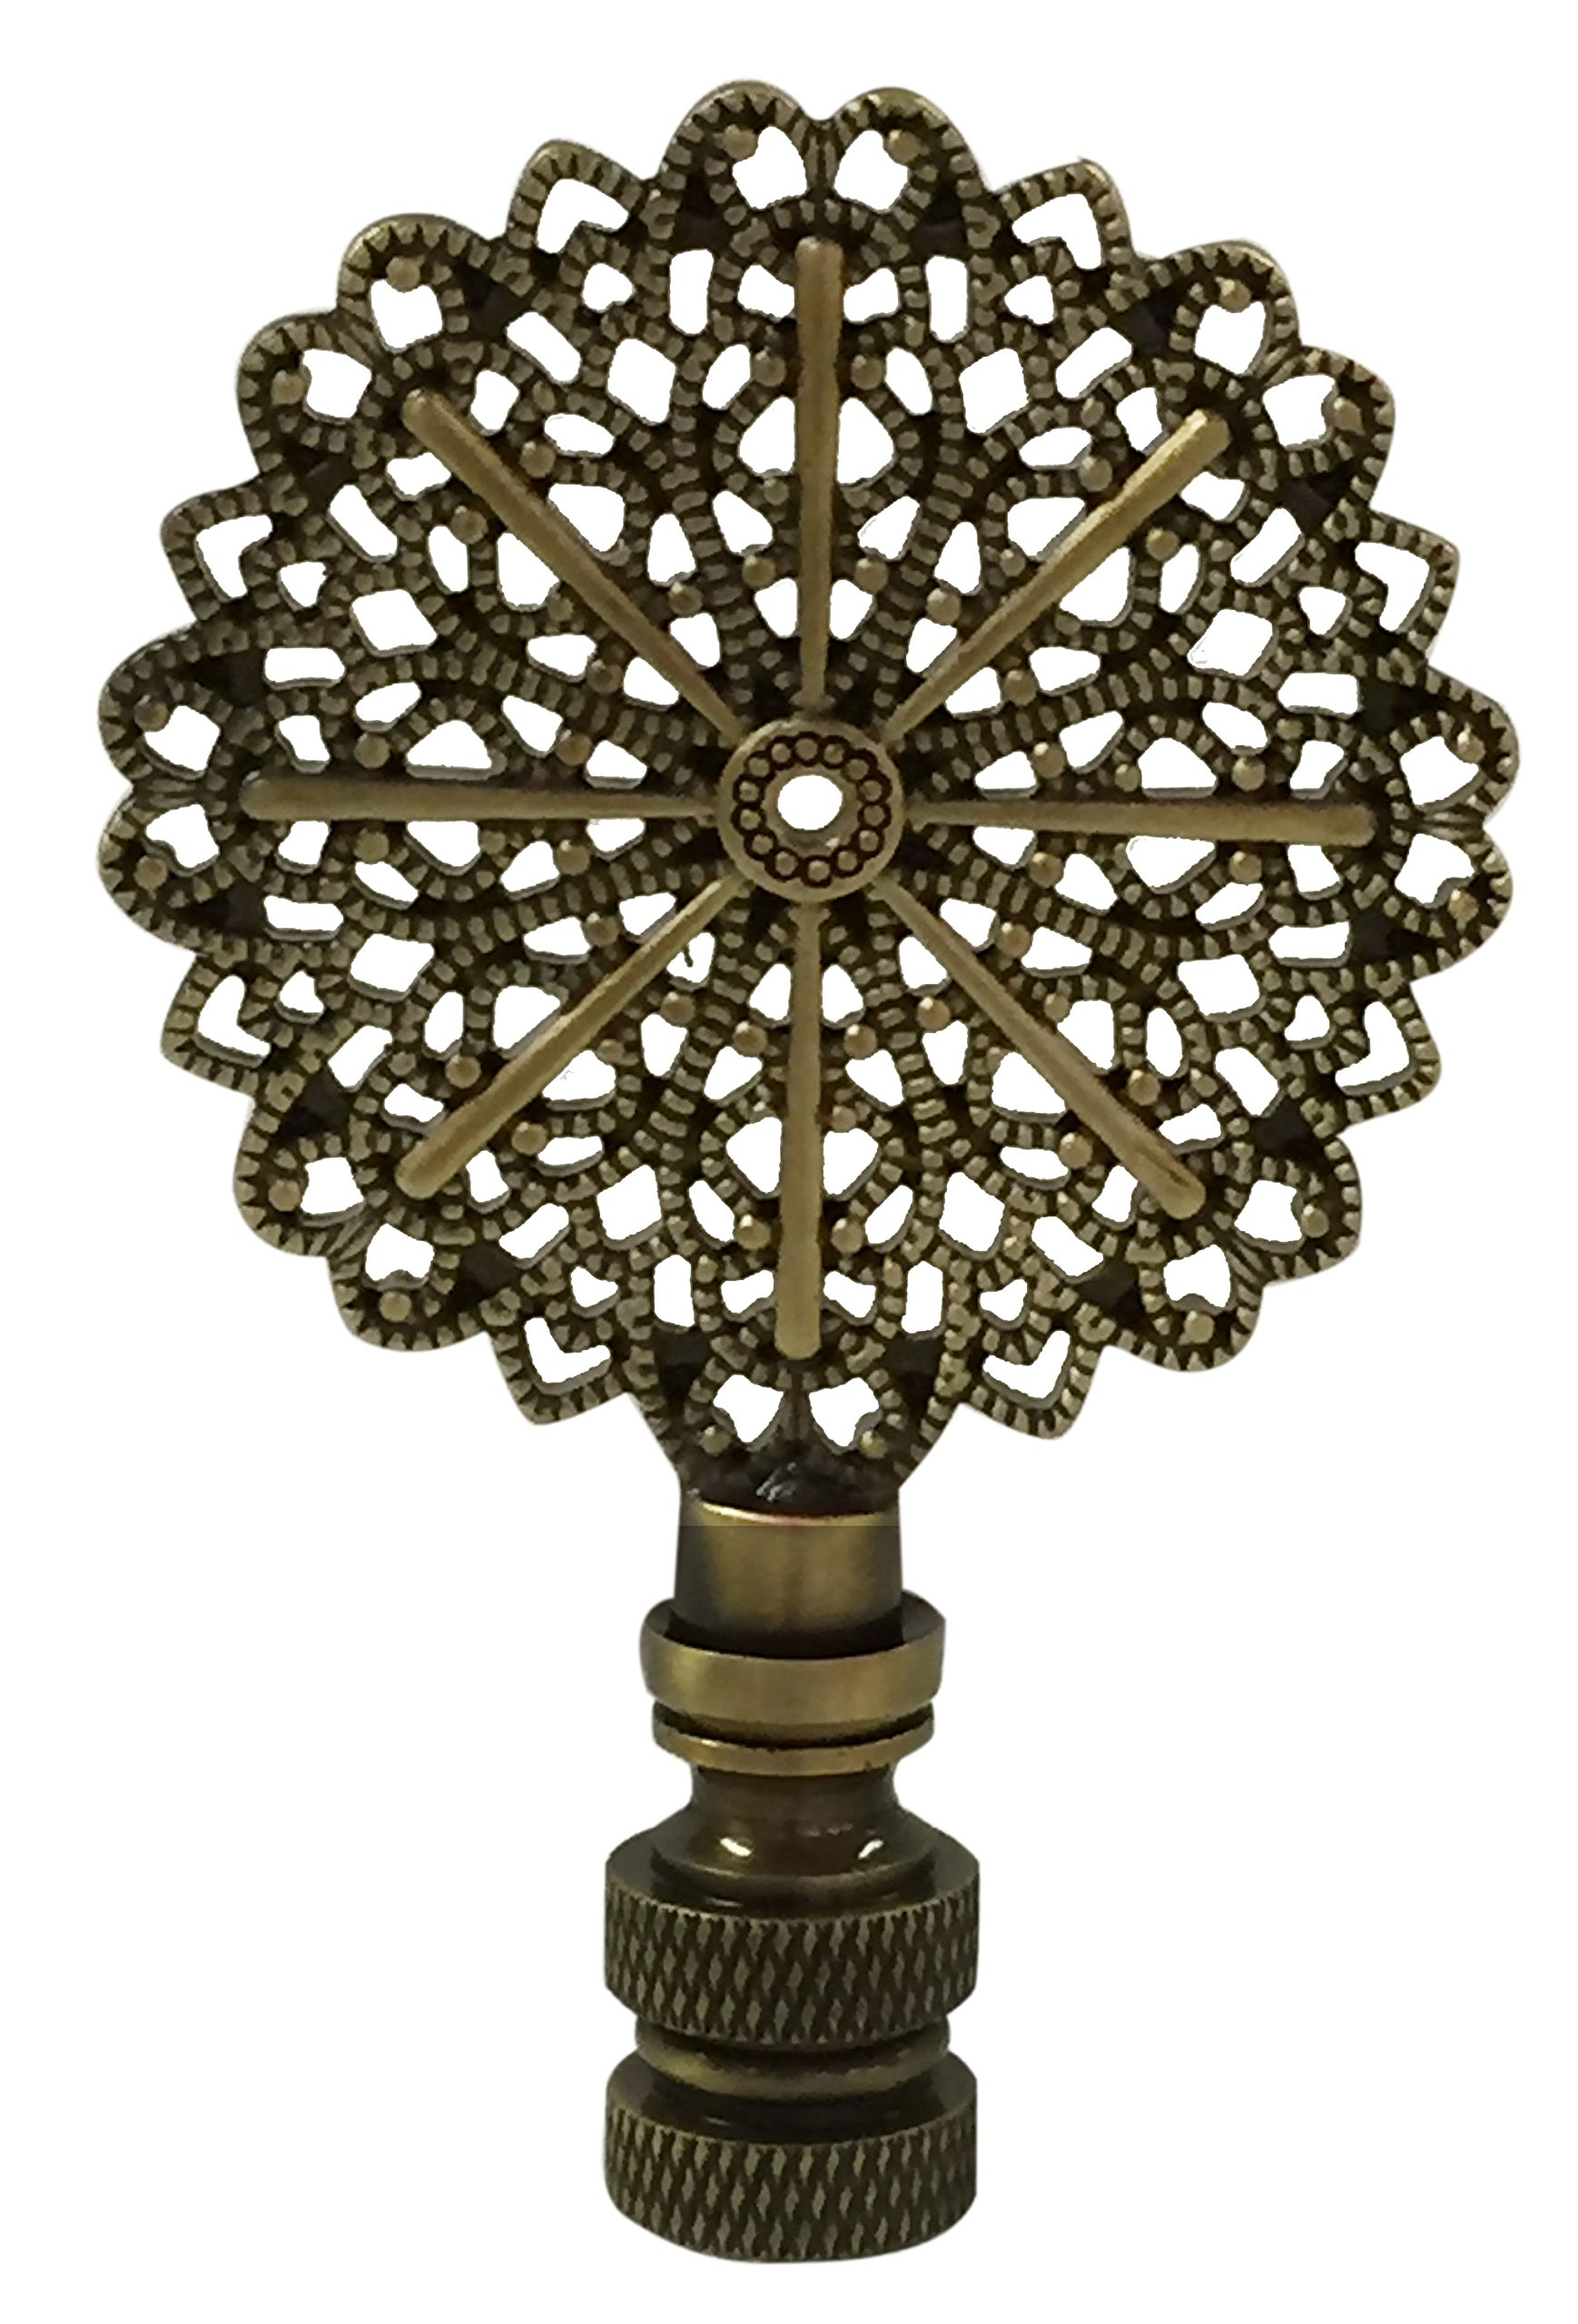 Royal Designs Traditional European Filigree Lamp Finial for Lamp Shade- Antique Brass by Royal Designs, Inc